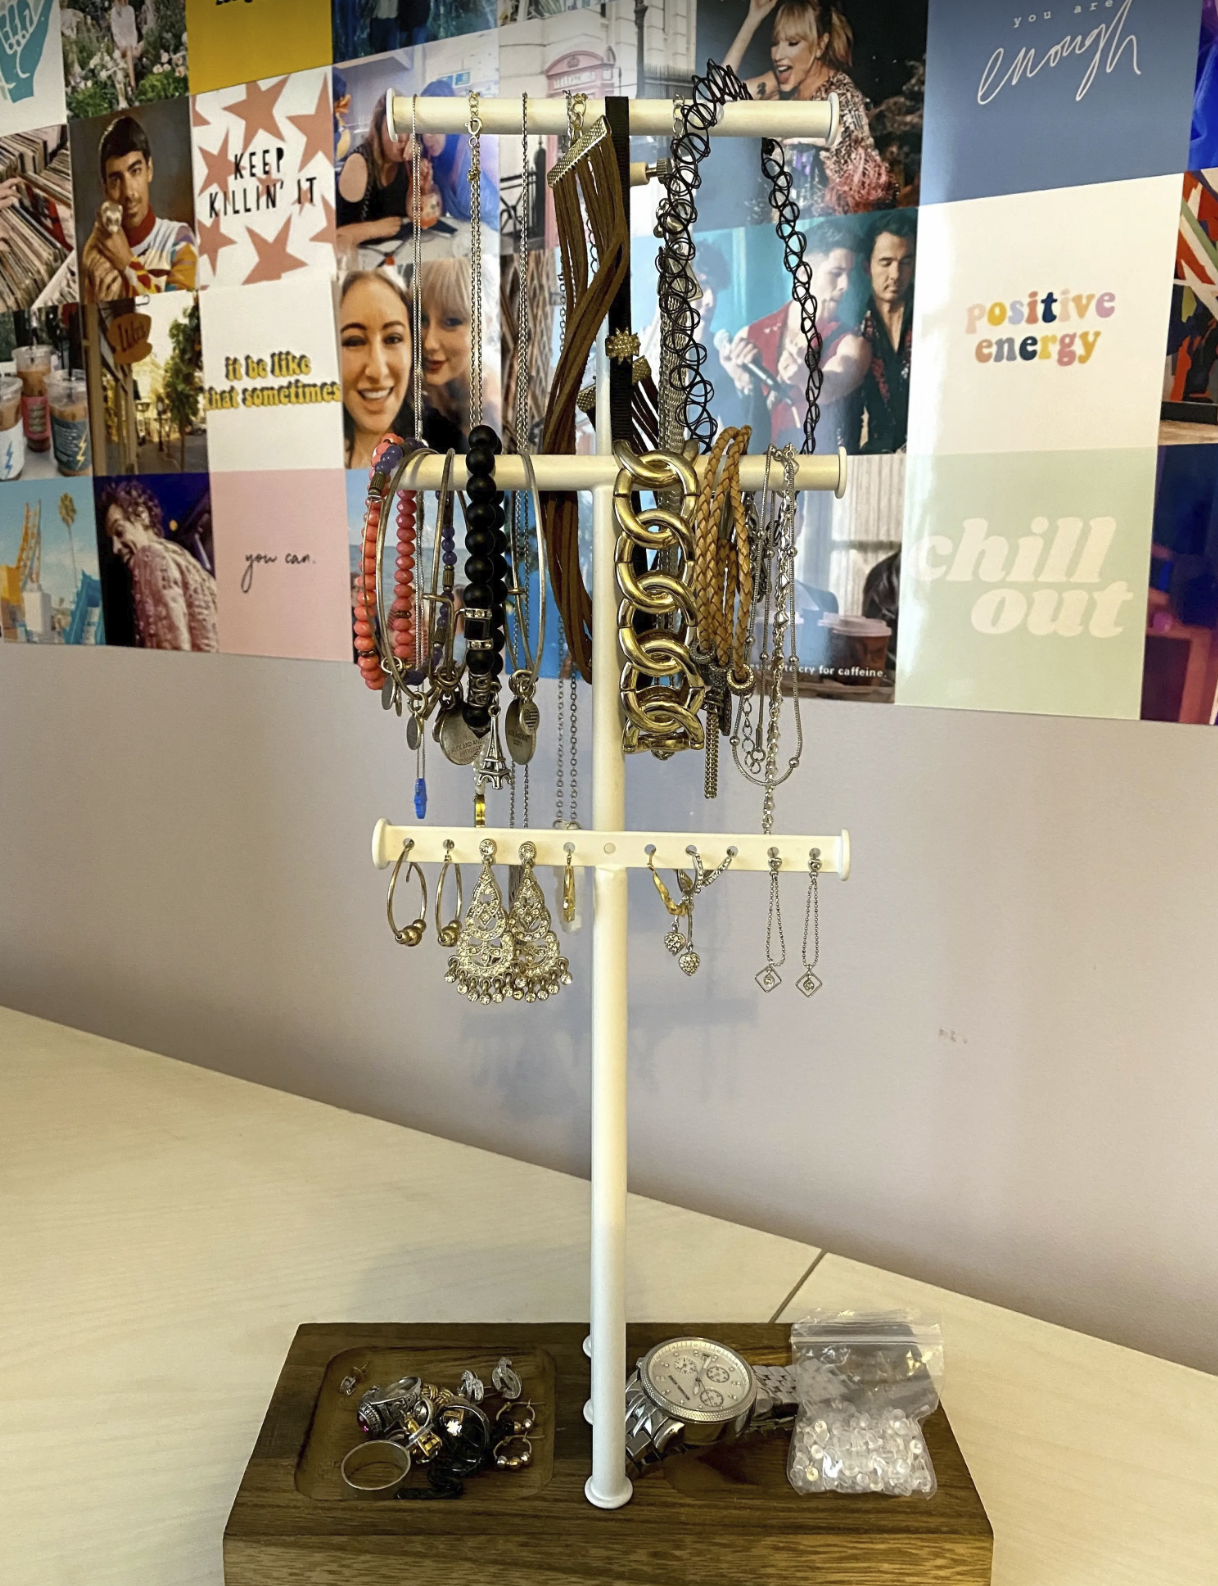 BuzzFeed writer Sam Wieder's jewelry tree full of jewelry neatly placed on it. It has three tiers for hanging and a tray at the bottom for other pieces.